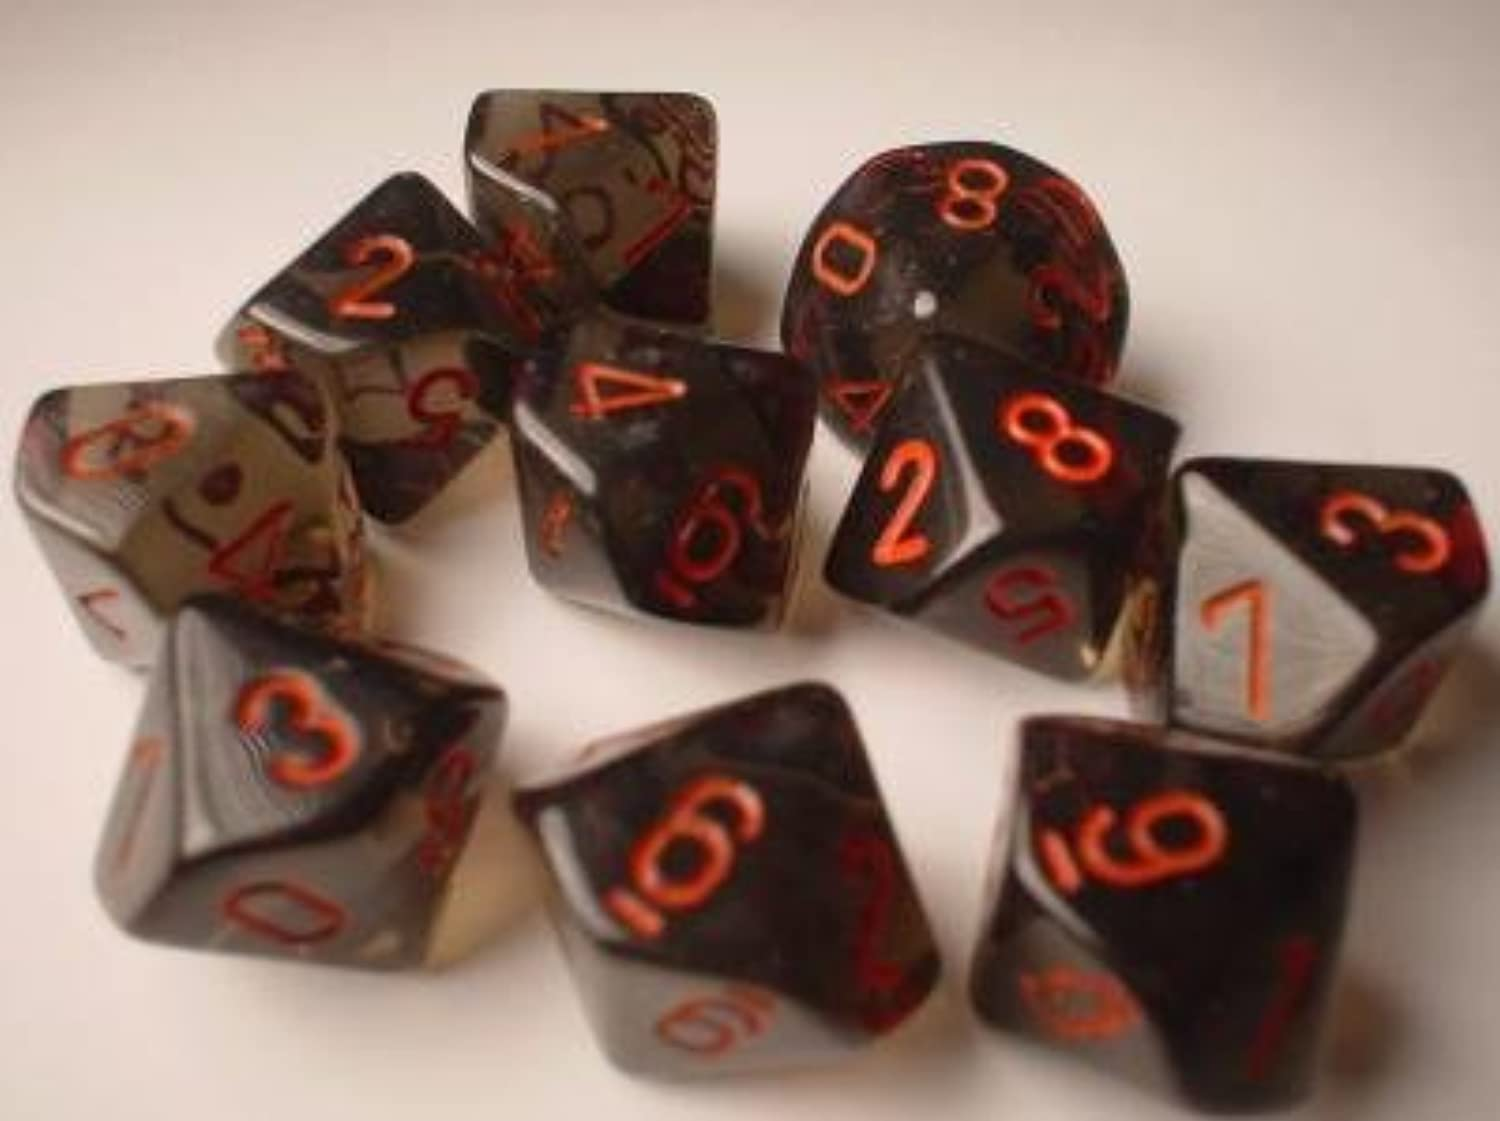 Chessex Dice Sets  Smoke with rot Translucent- Ten Sided Die d10 Set (10) by Chessex